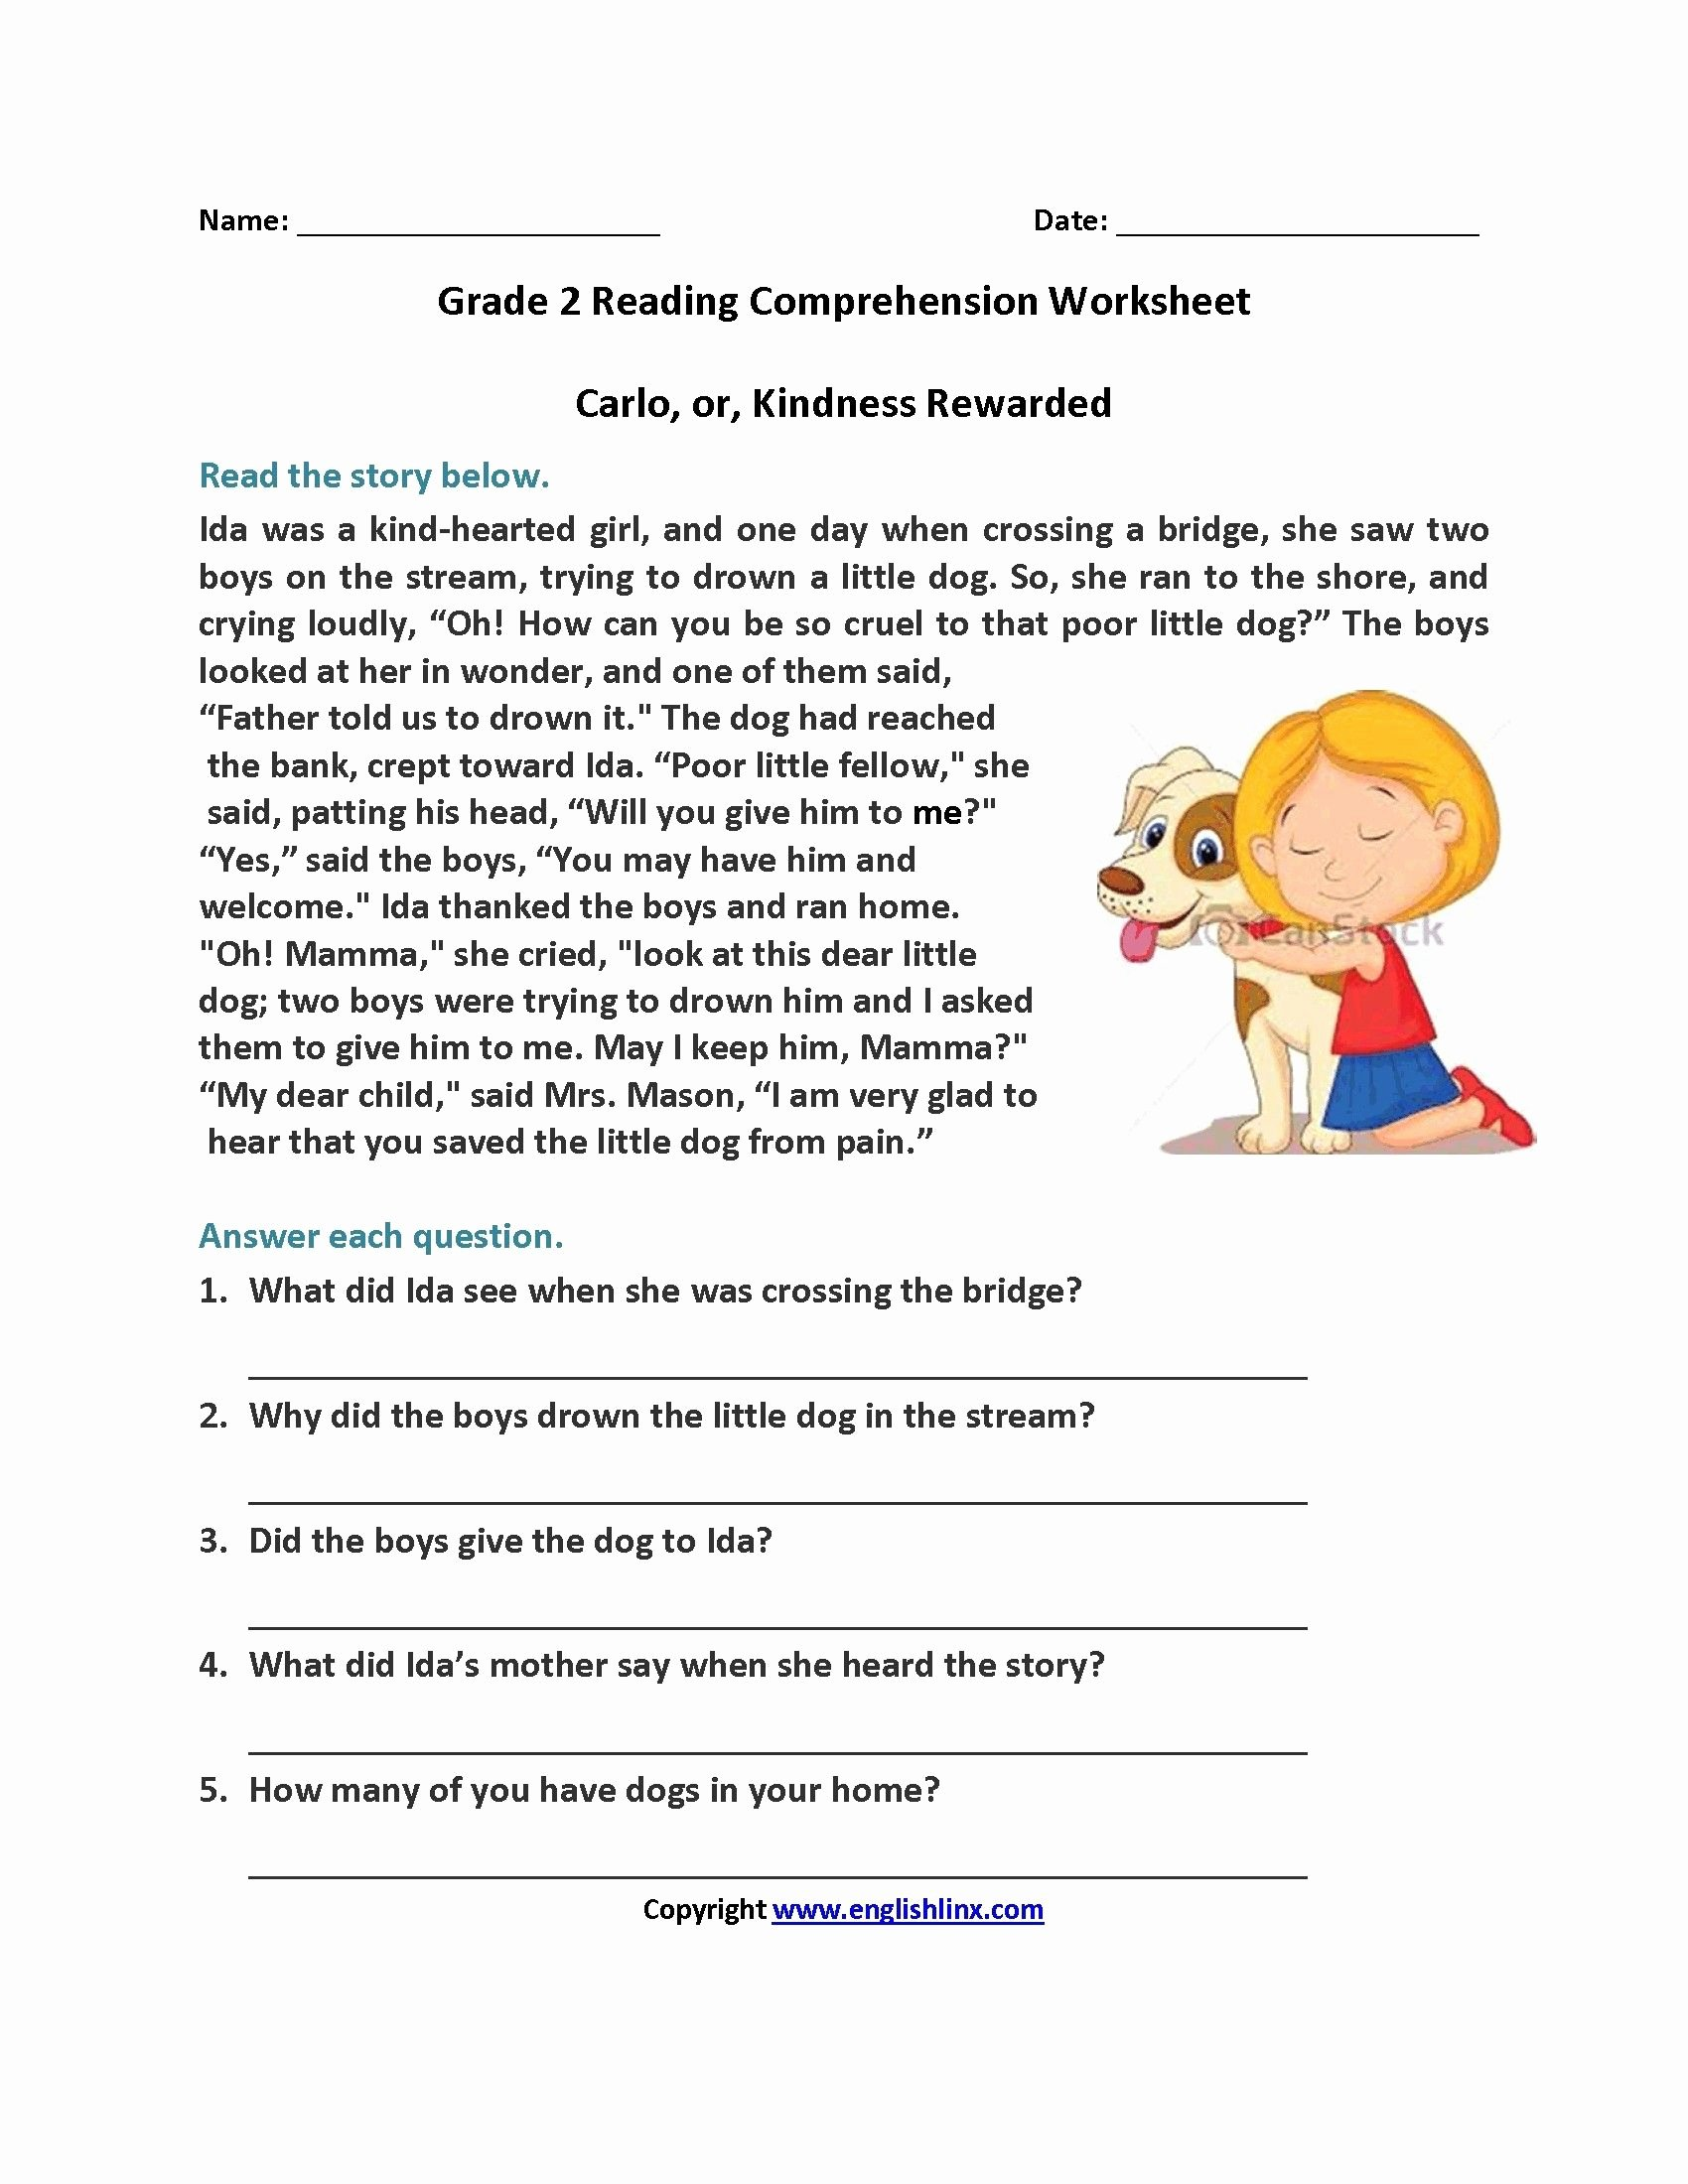 Grade 2 Reading Comprehension Worksheets Best Of 14 Periodic Free 1st Grade Reading Prehension Worksheets